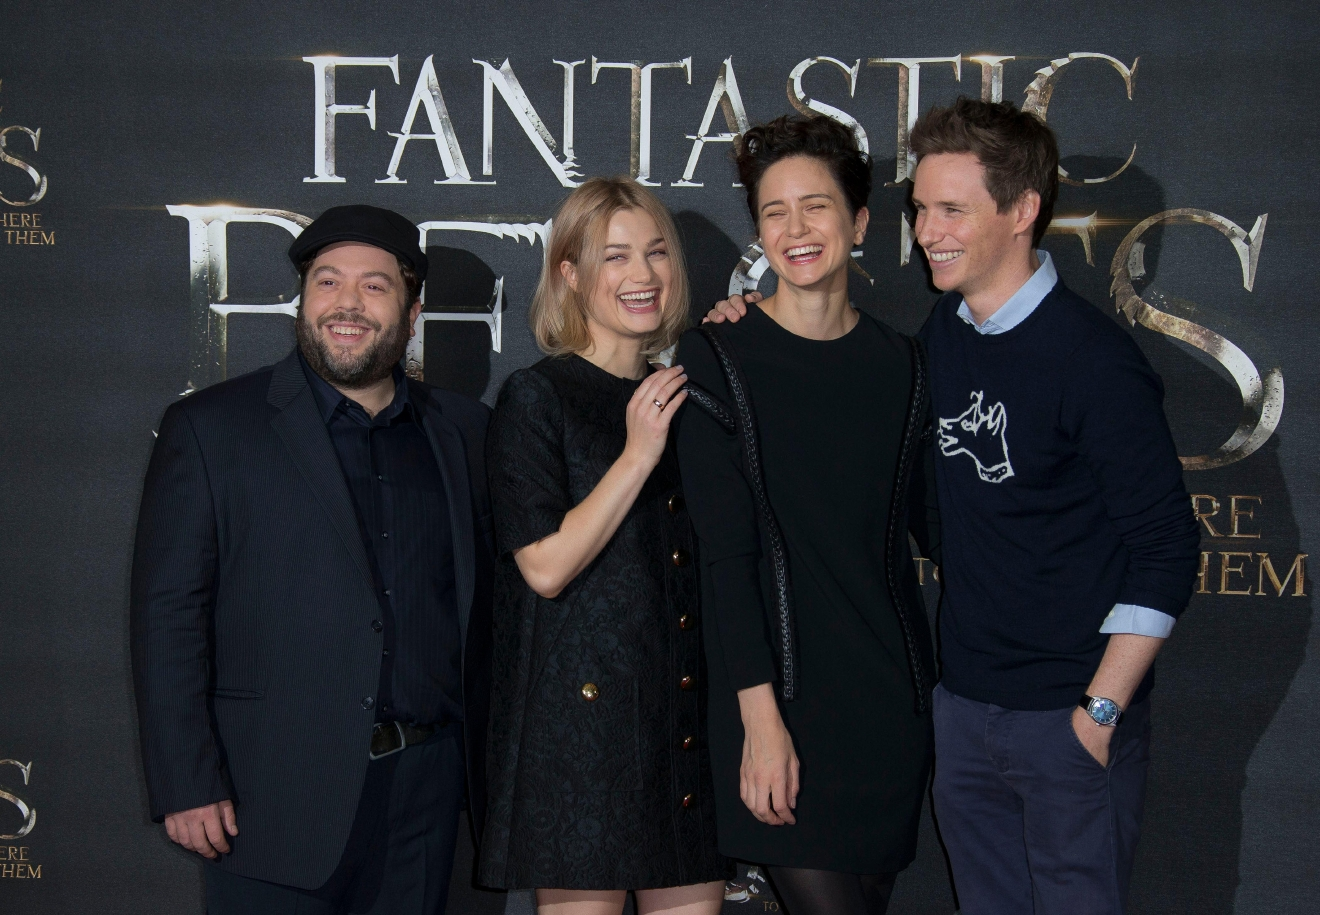 Actors Dan Fogler, from left, Alison Sudol, Katherine Waterston and Eddie Redmayne pose for photographers upon arrival at the photo call of the film 'Fantastic Beasts and Where to Find Them', at a central London hotel, Thursday, Oct. 13, 2016. (Photo by Joel Ryan/Invision/AP)